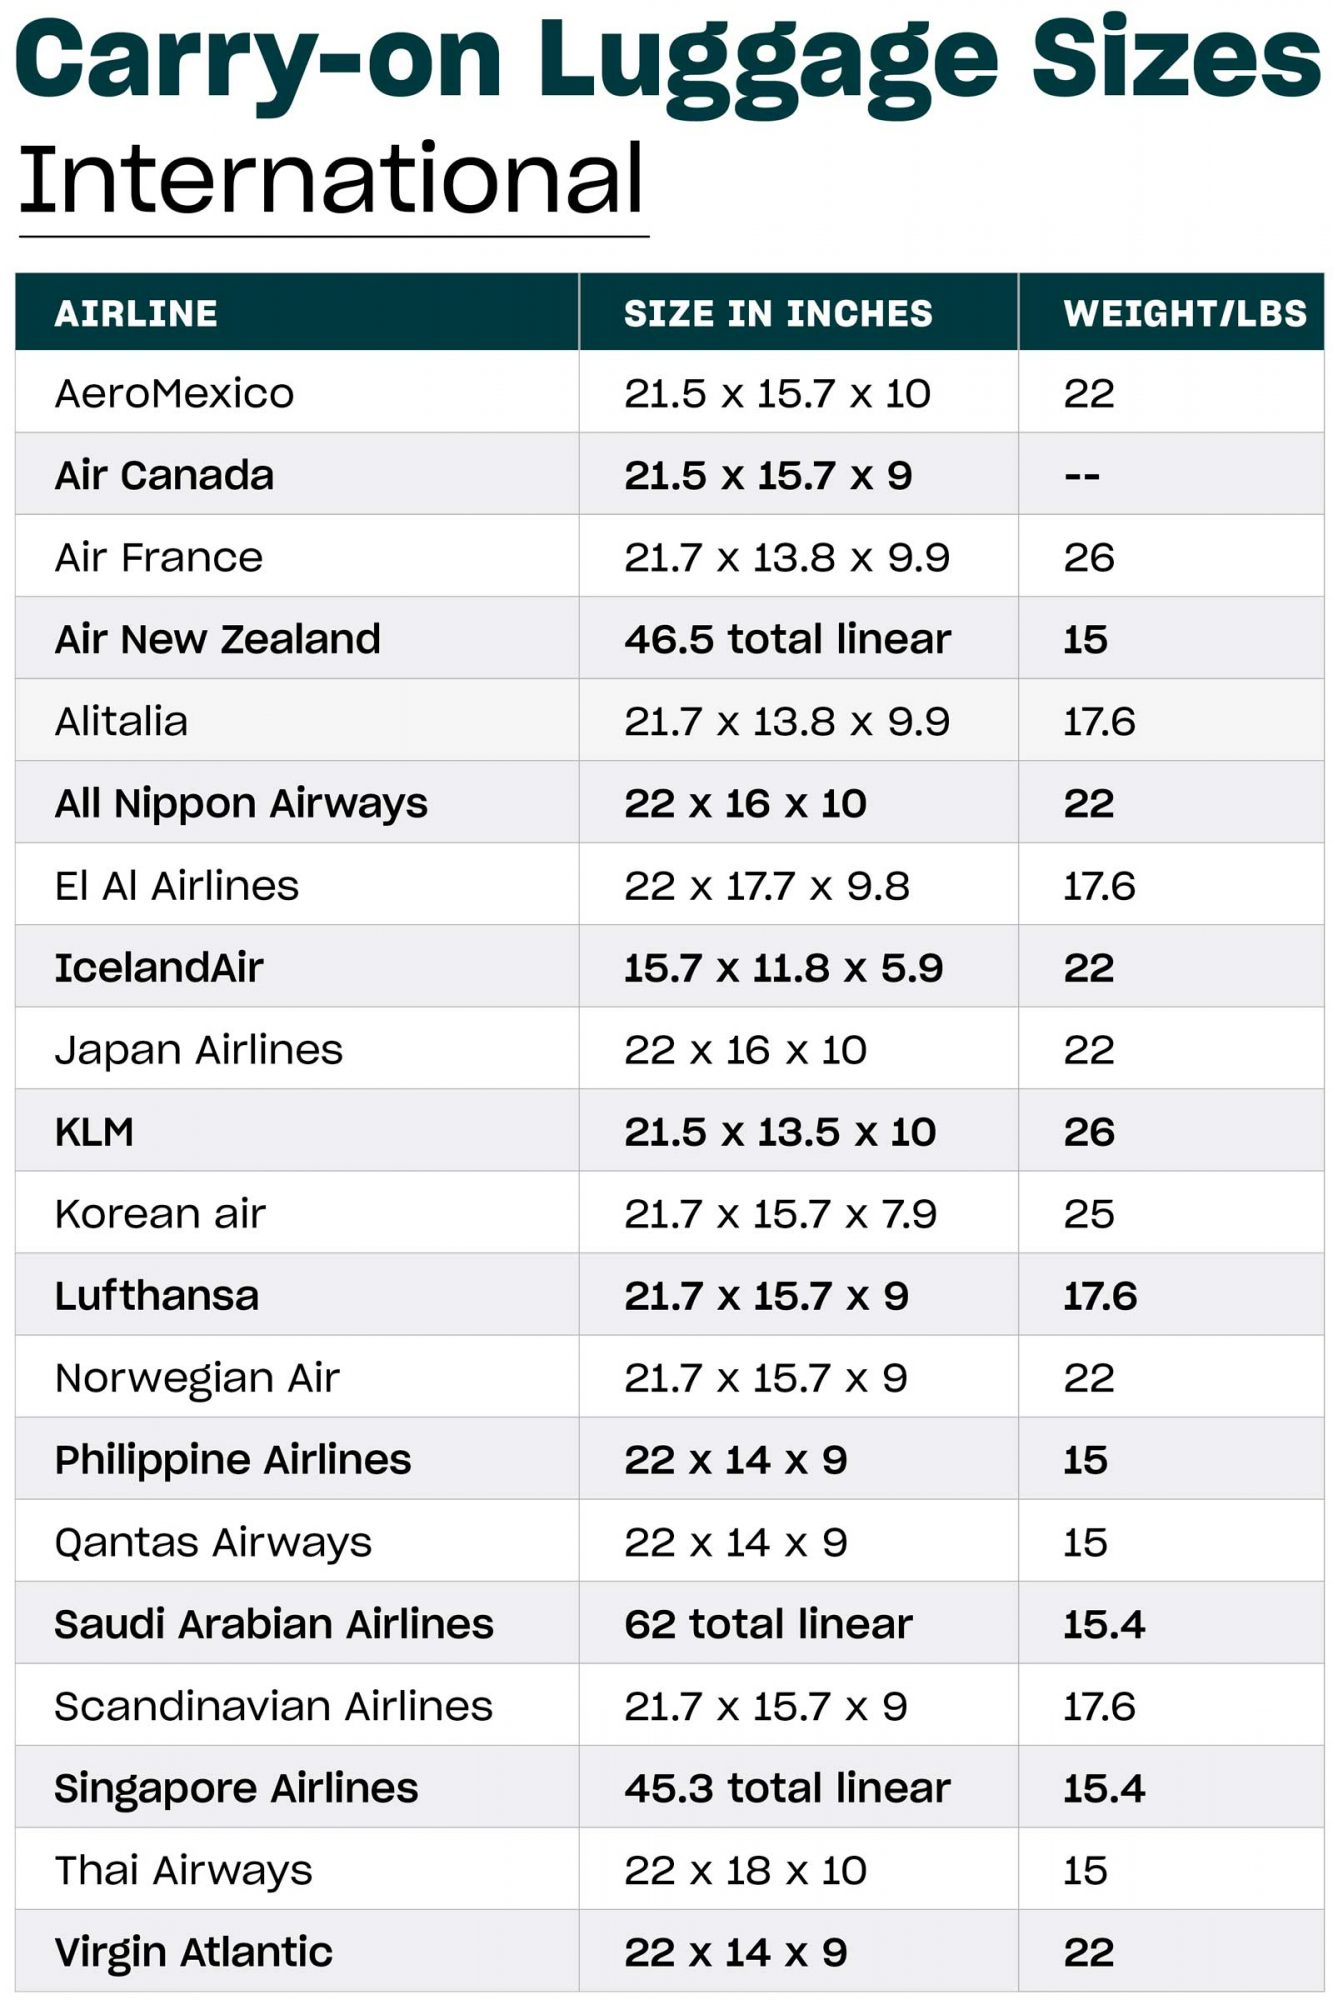 Common Carry-on Luggage Sizes listed in a table